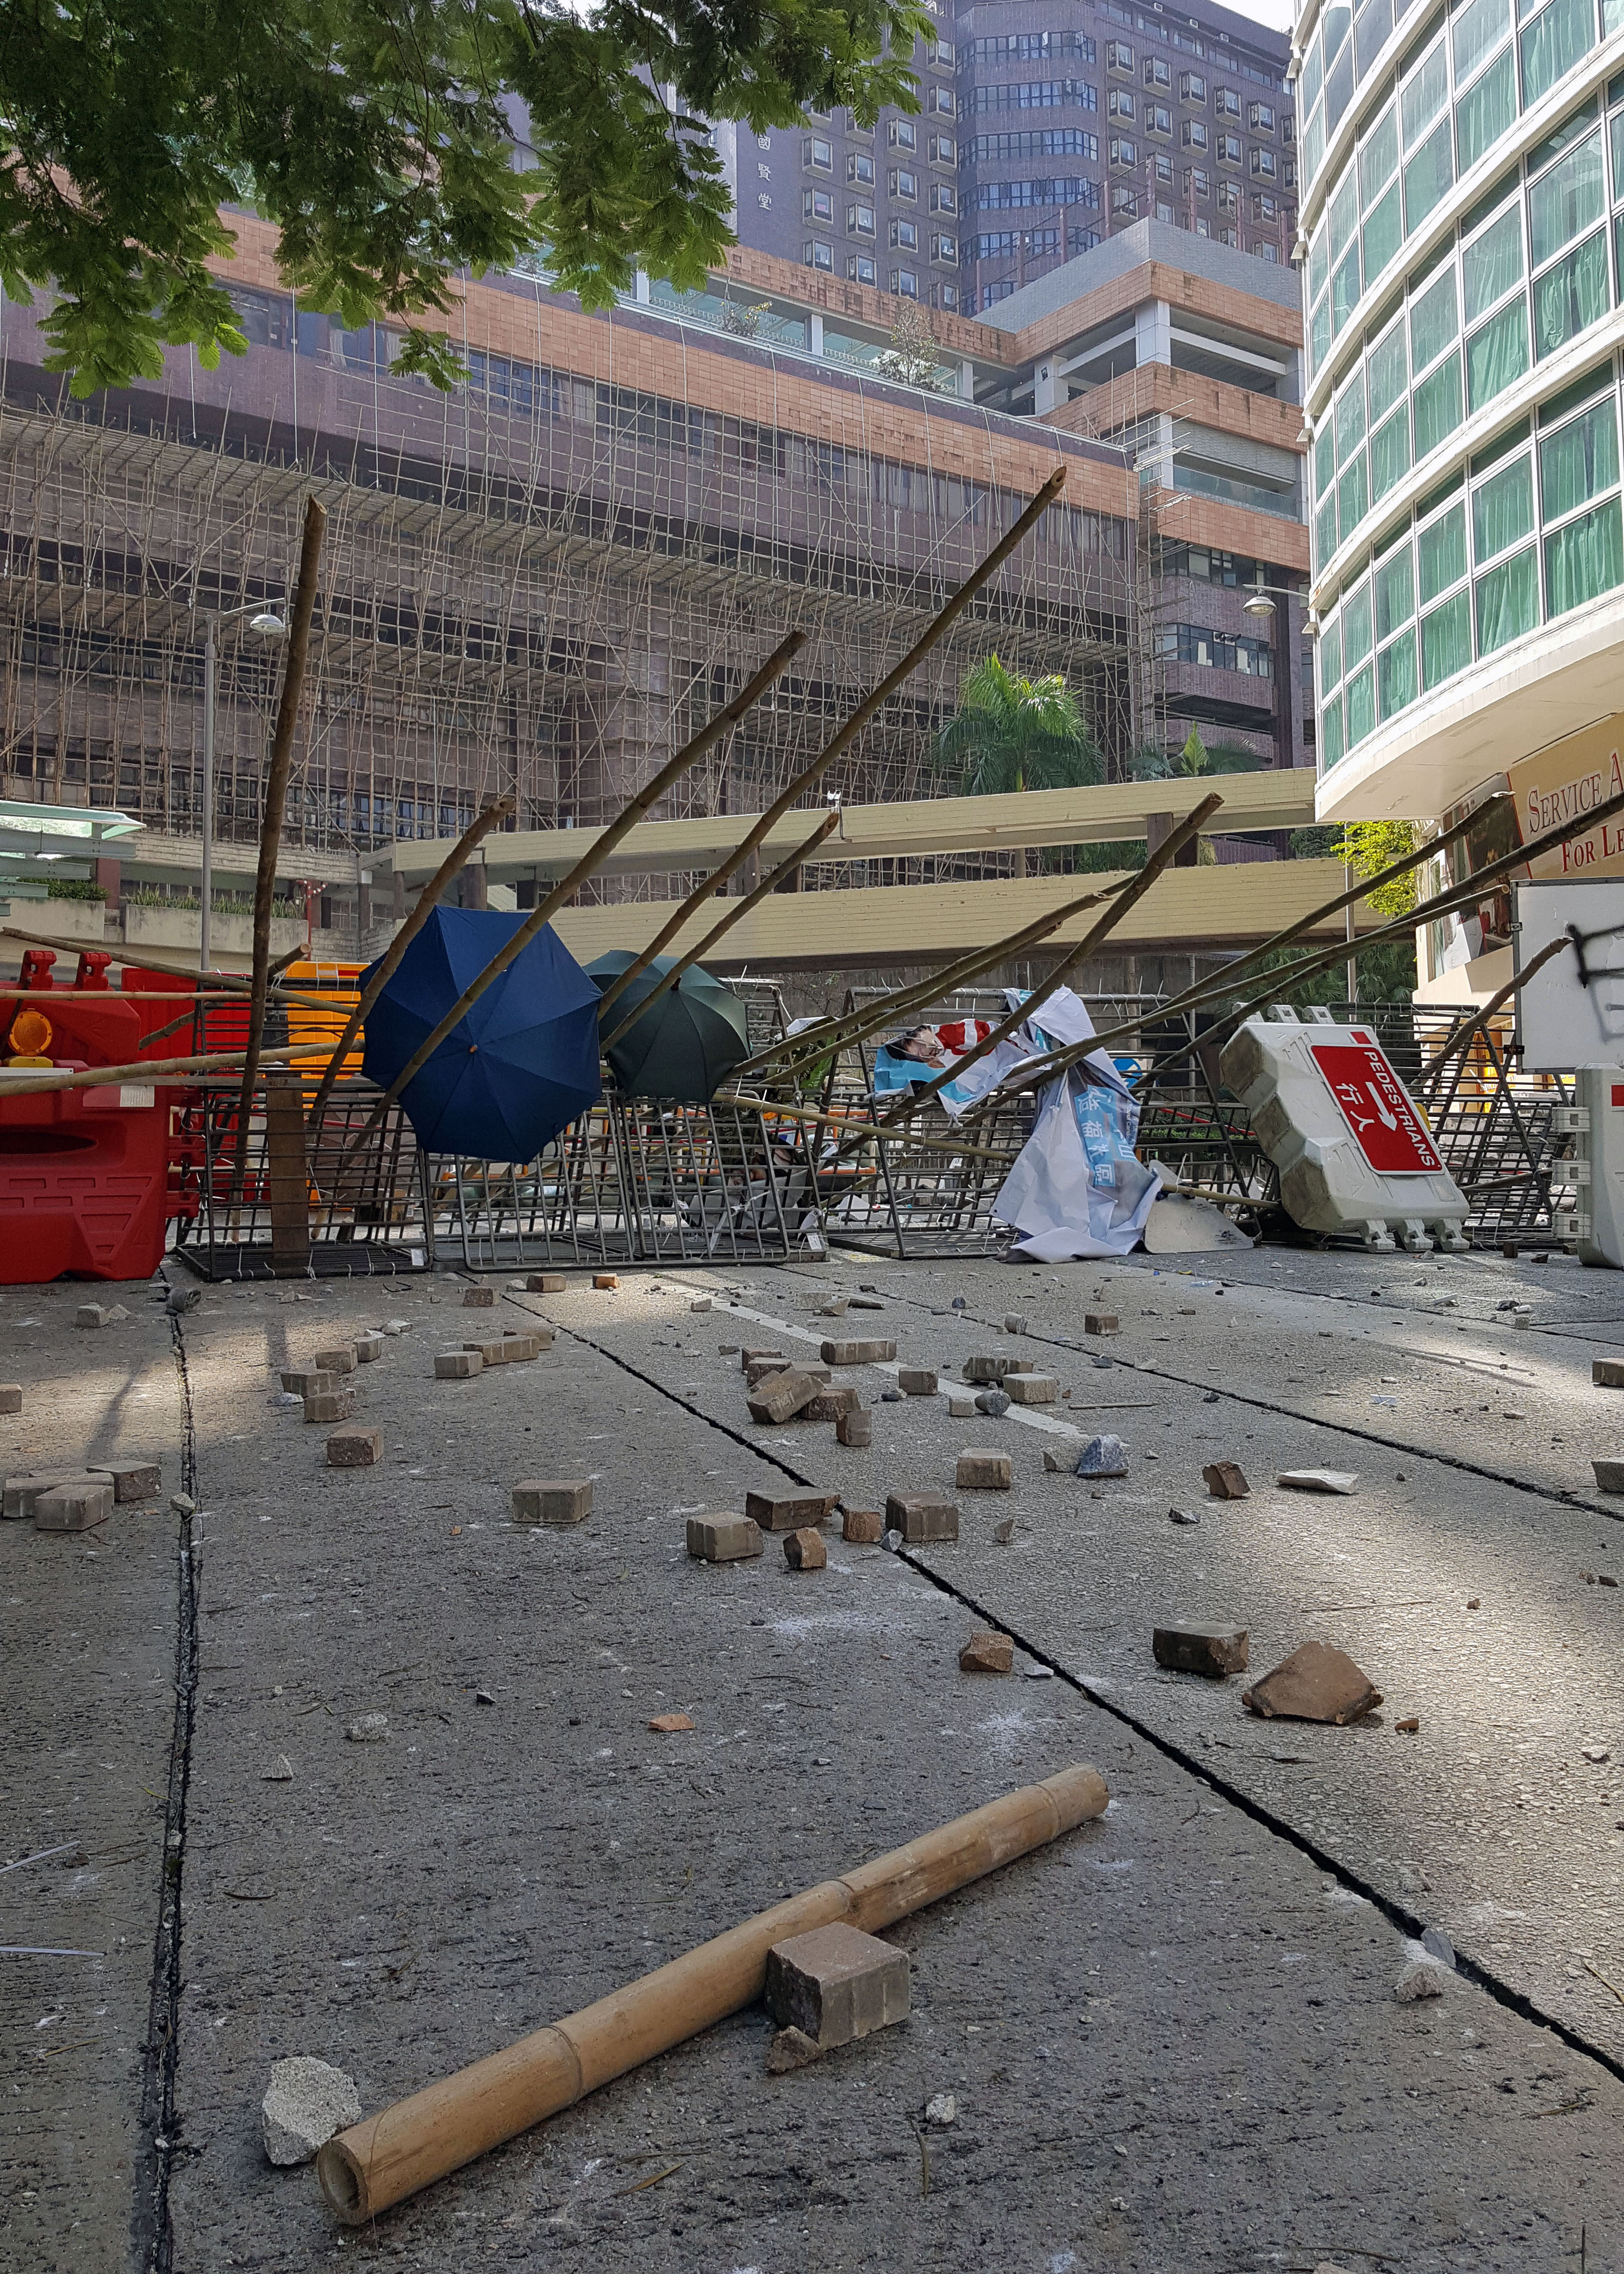 Barricades during the protests in Hongkong